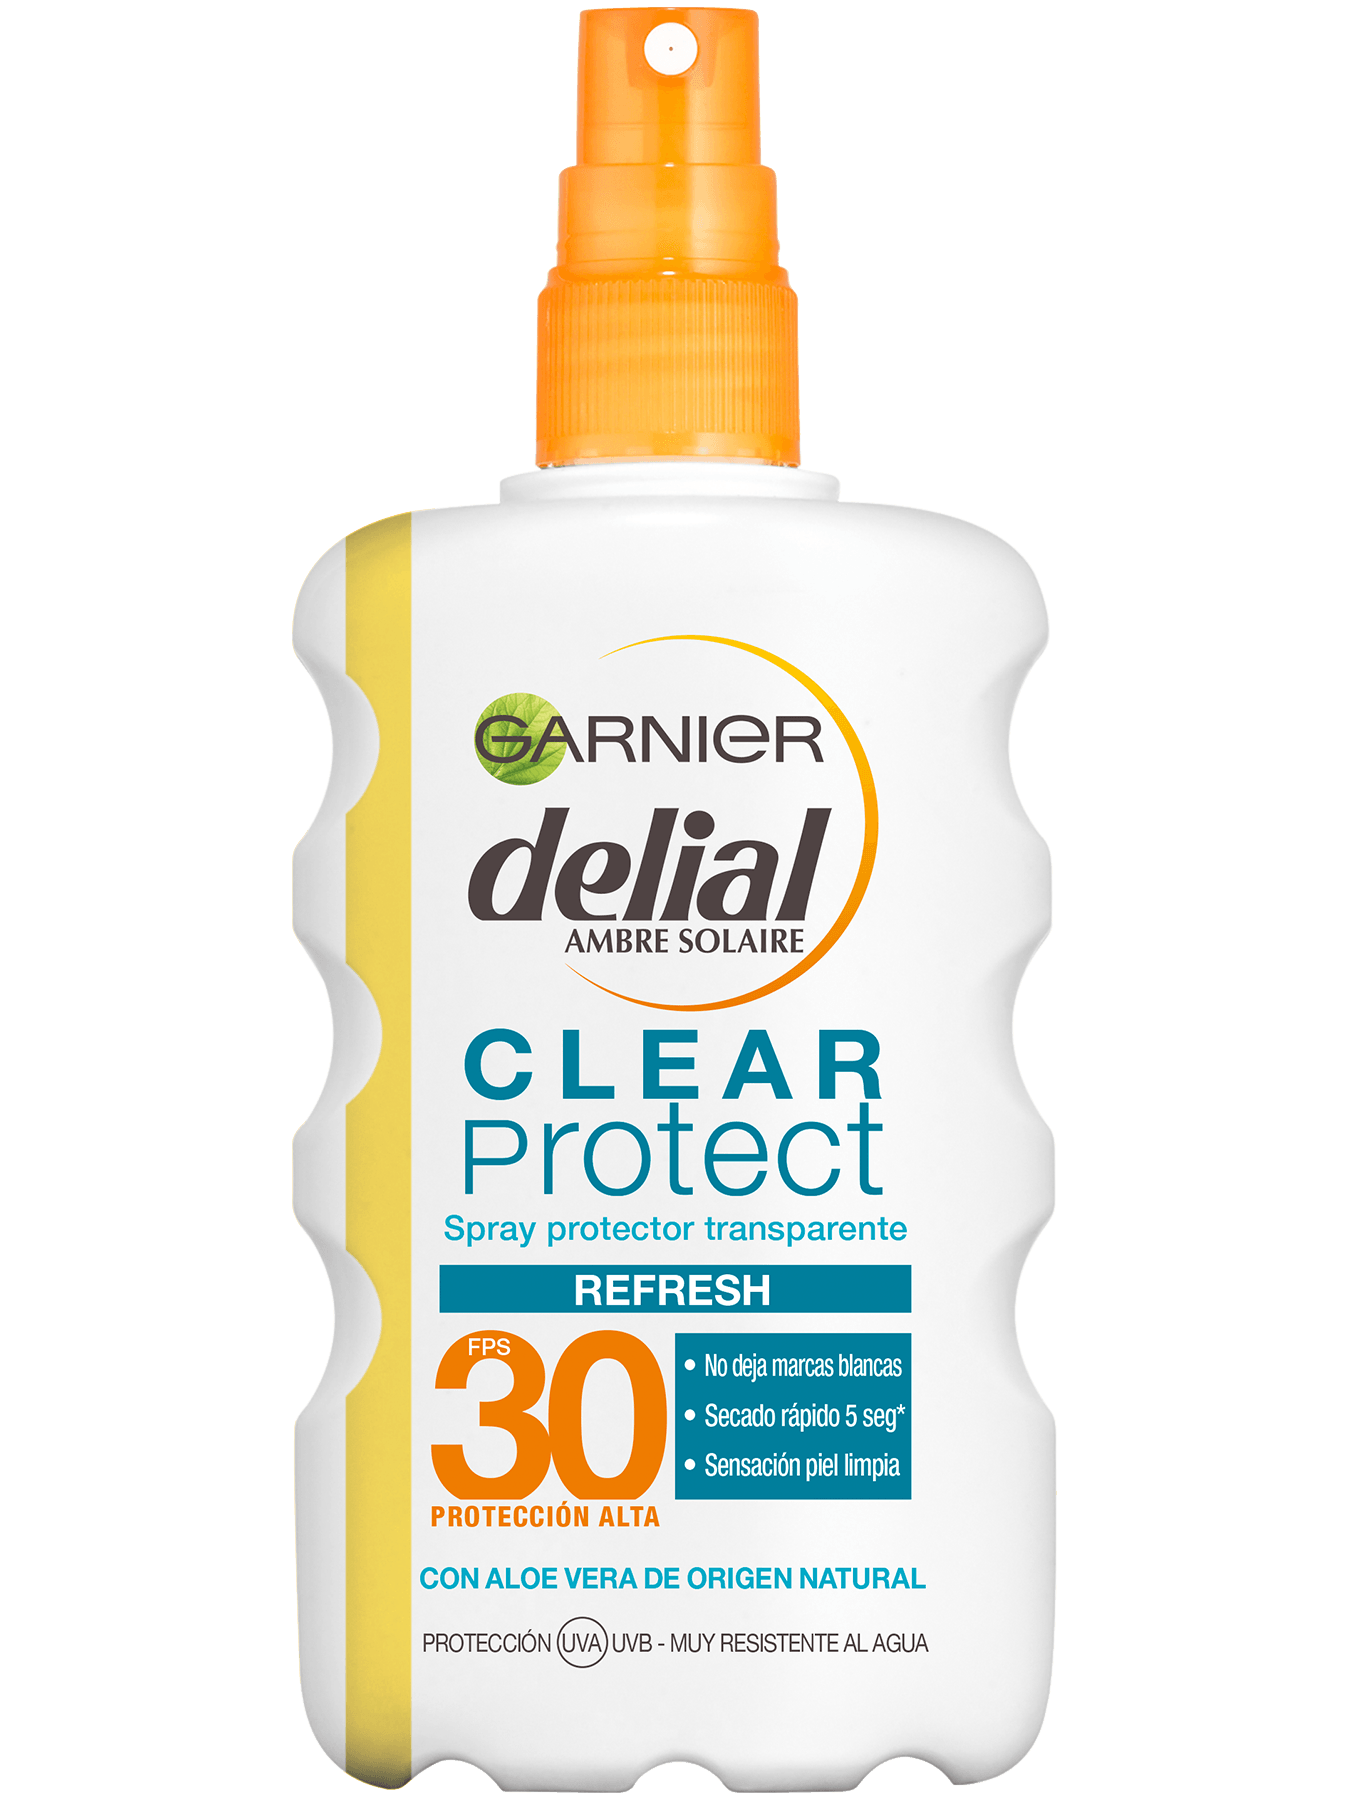 Delial Clear Protect 30 Refresh